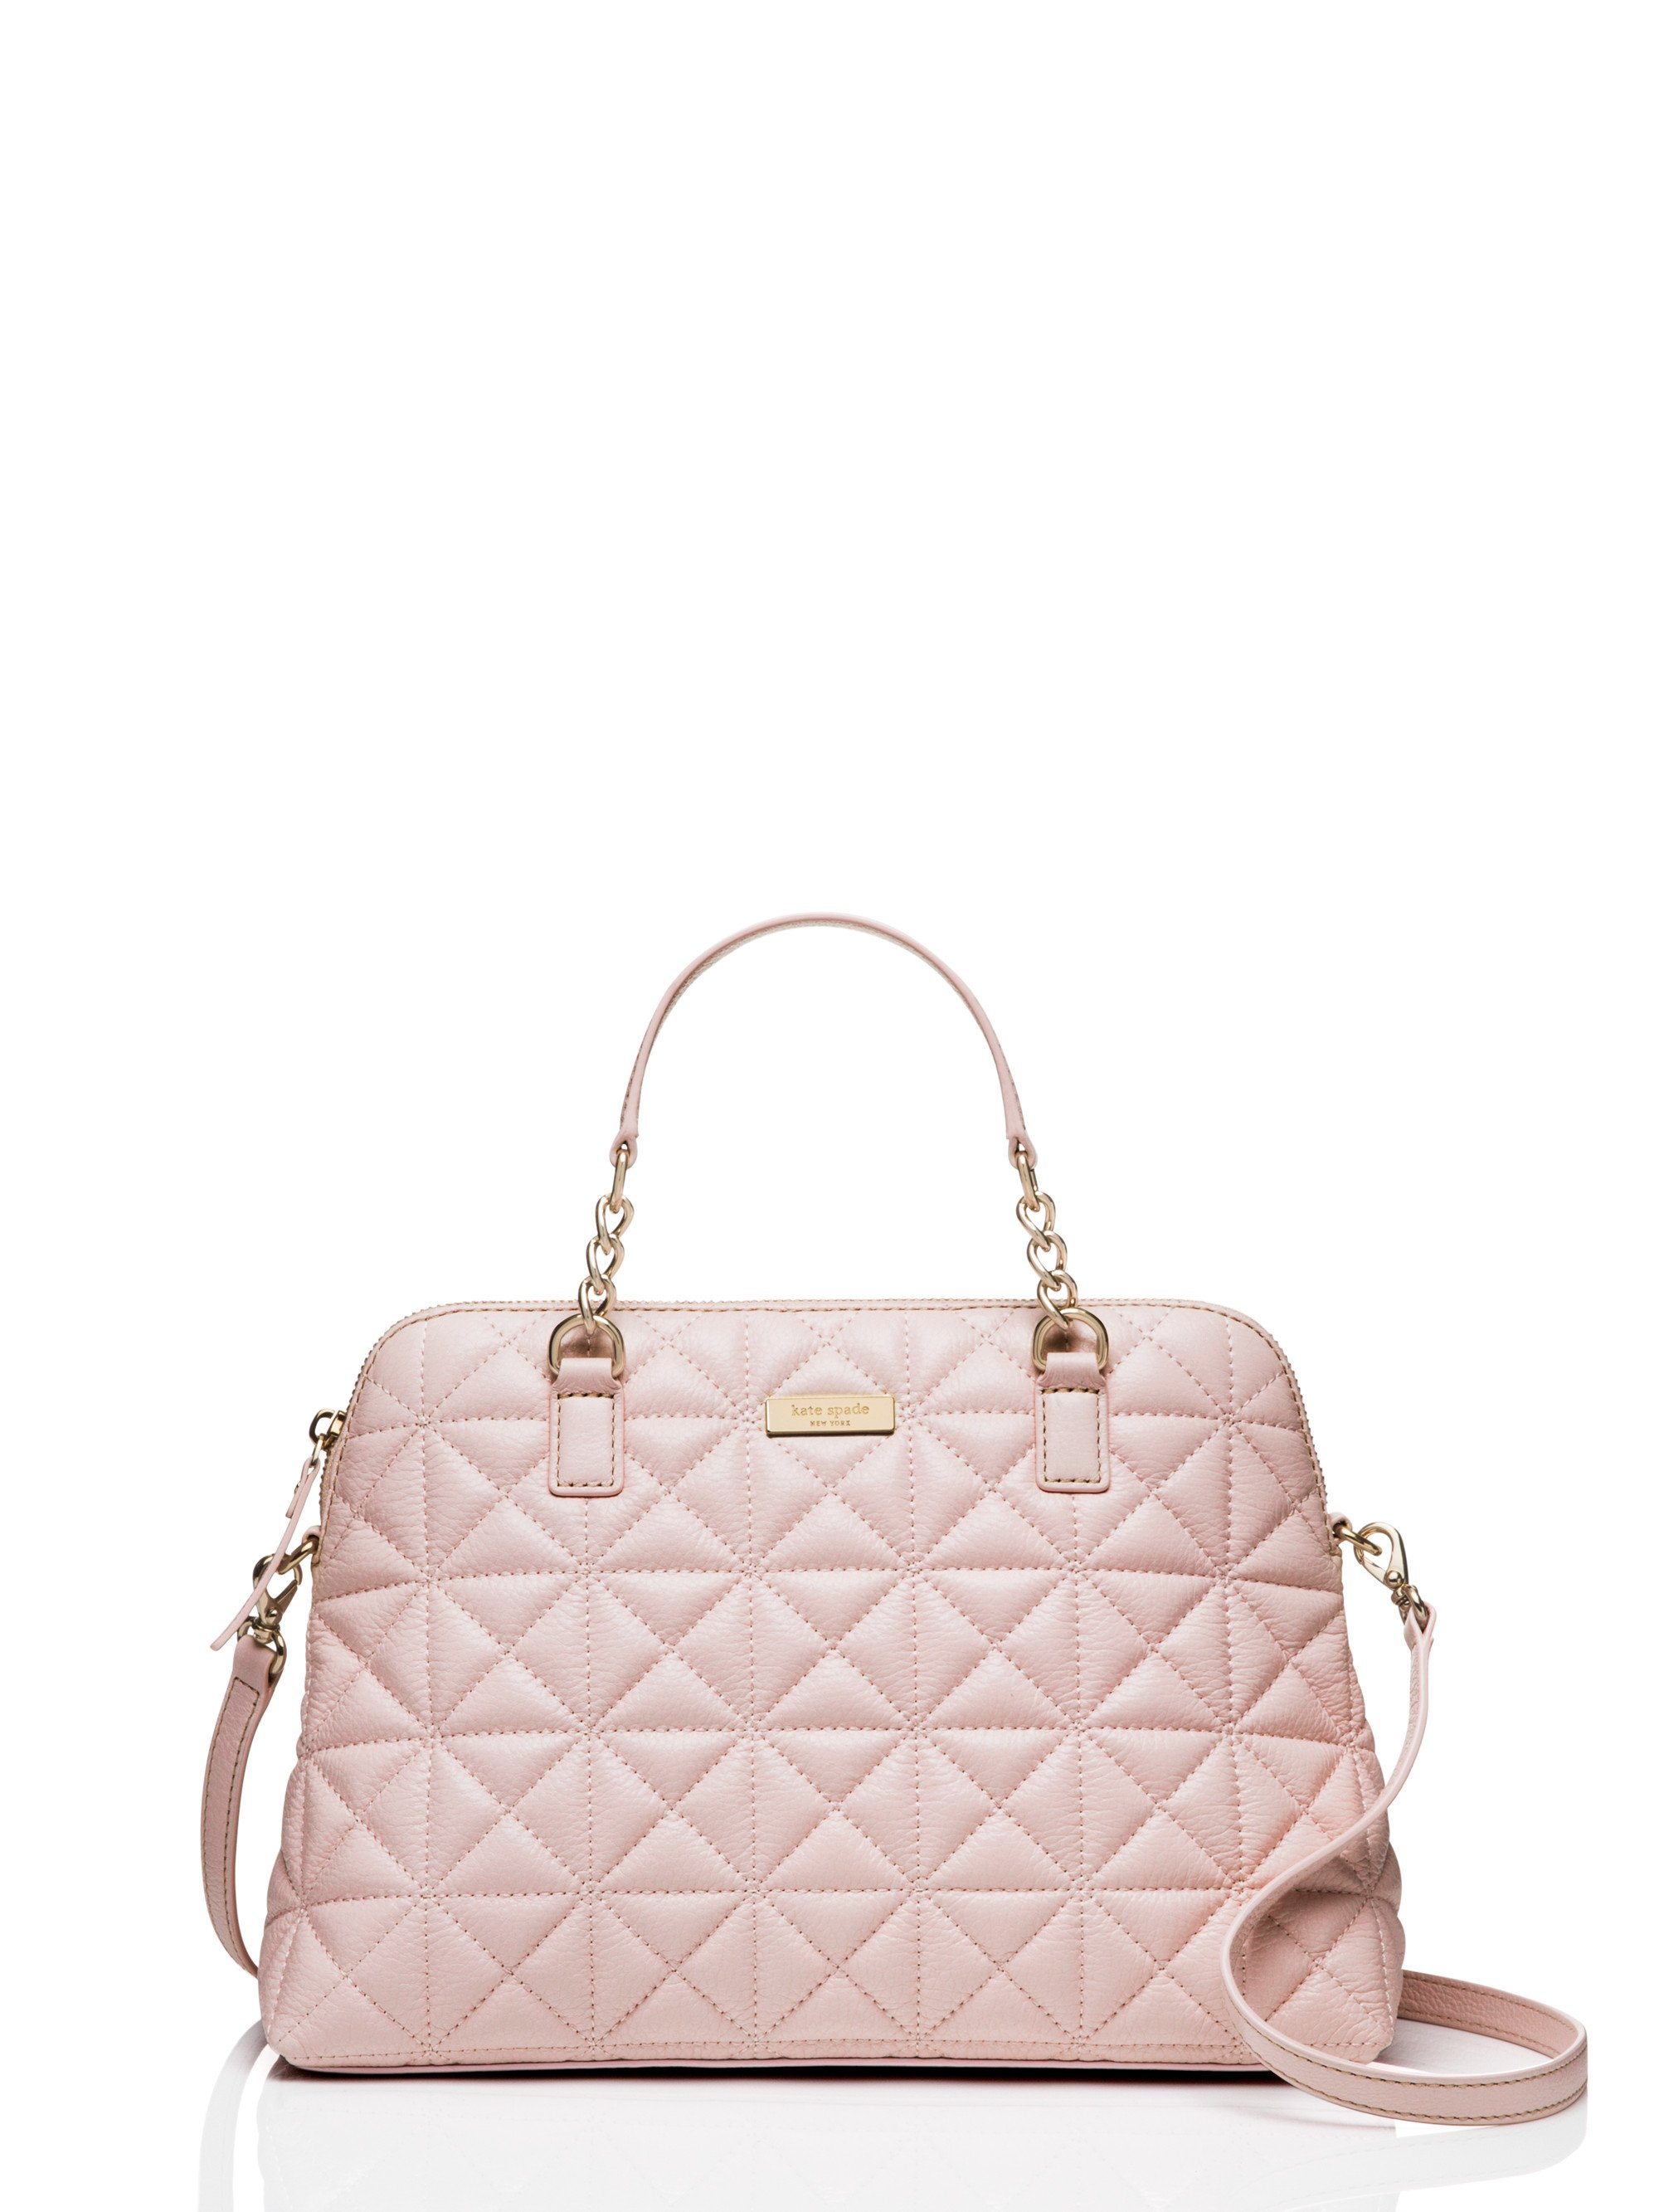 e5bd9aa2b4 Lyst - Kate Spade Whitaker Place Small Rachelle in Pink